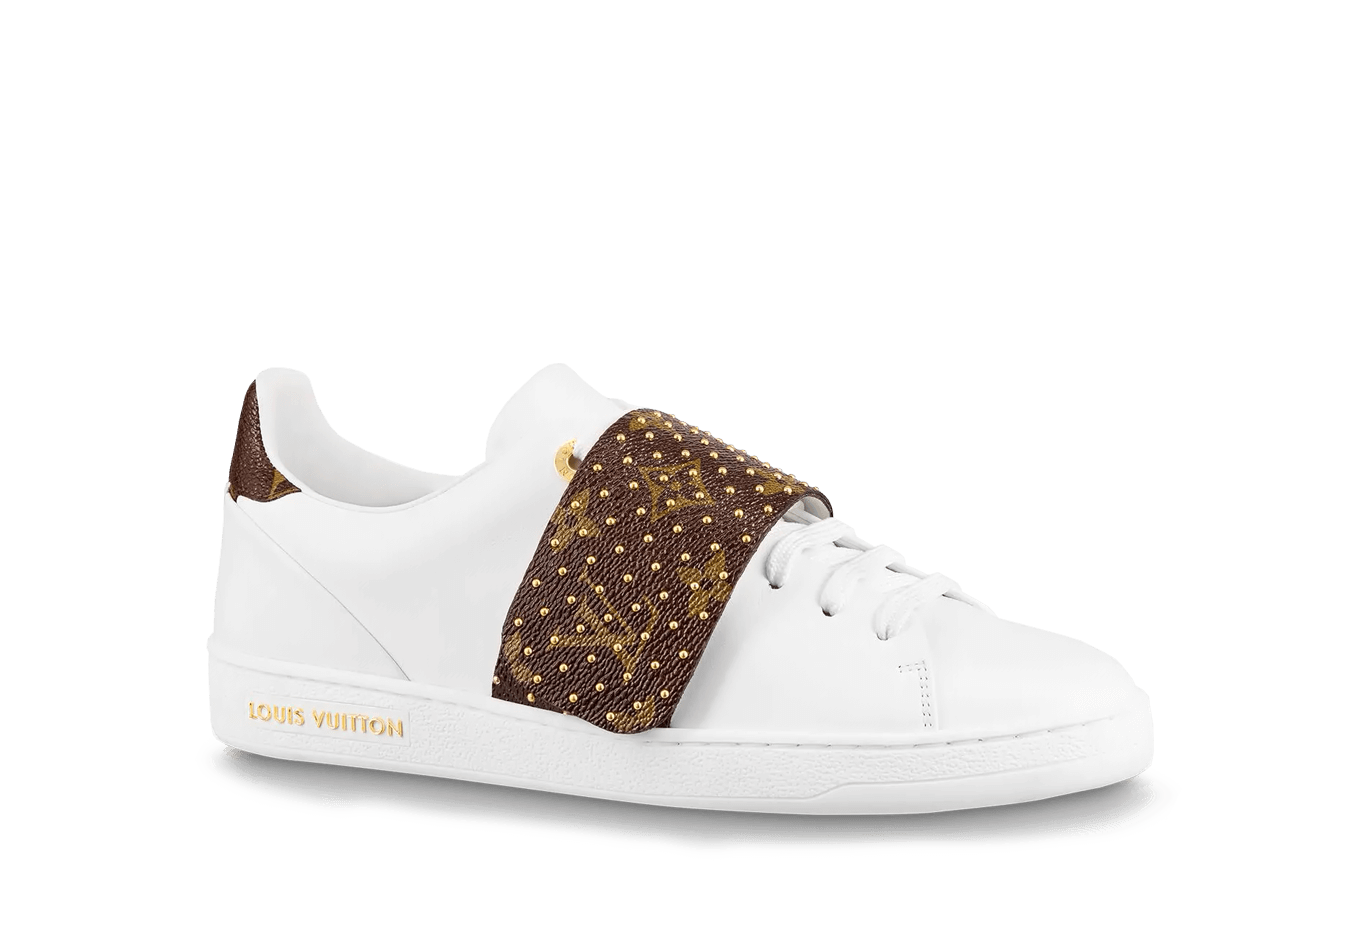 LOUIS VUITTON     Rubber Outsole the best workout inspiration